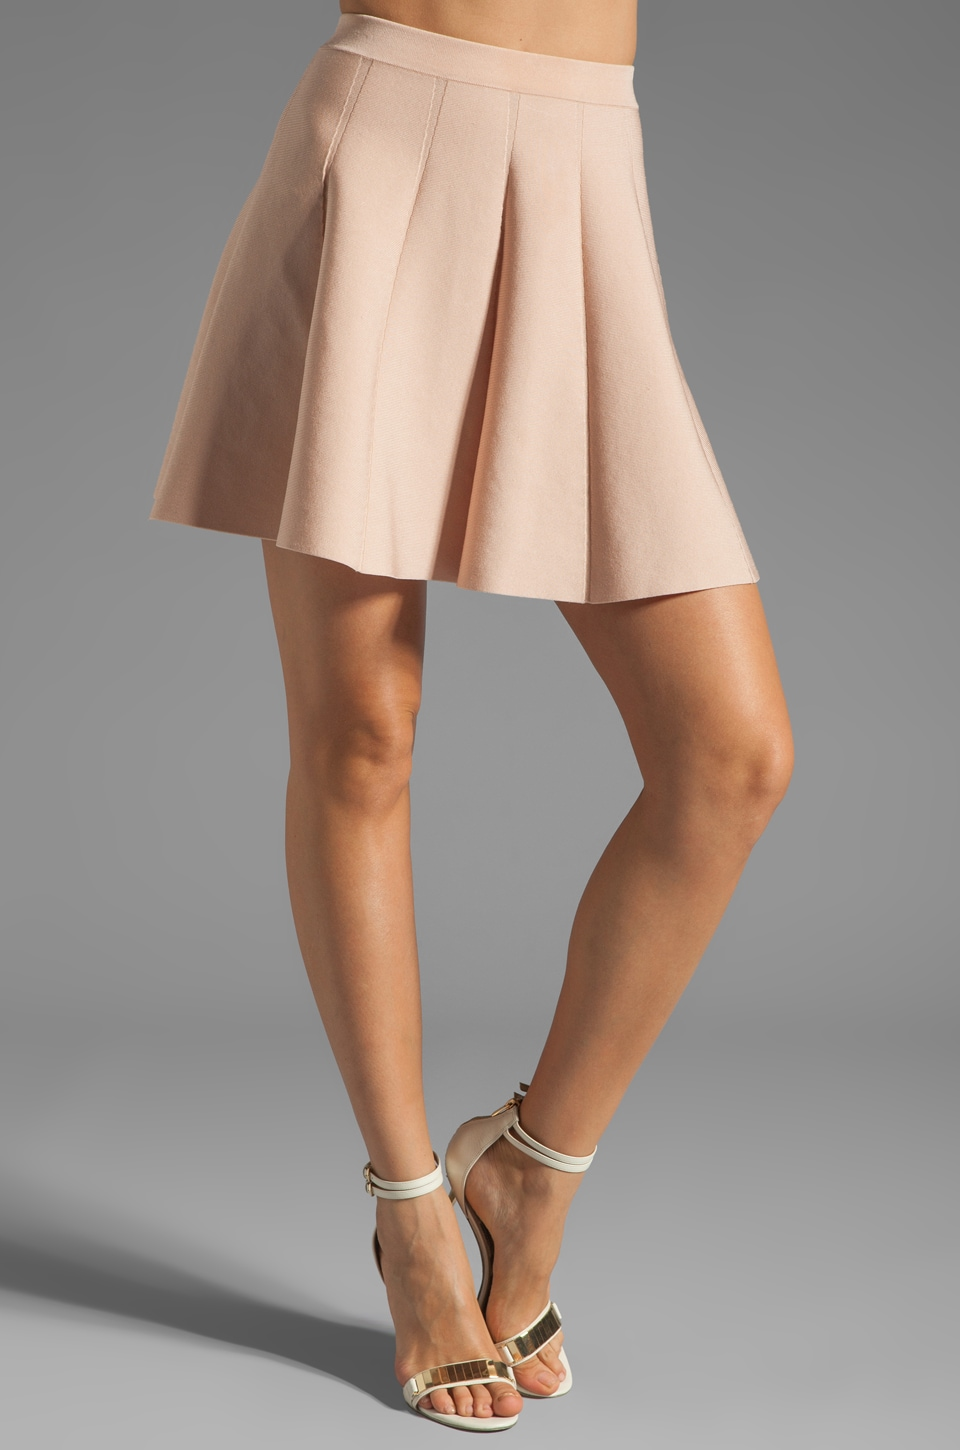 Parker Zoey Knit Skirt in Sand